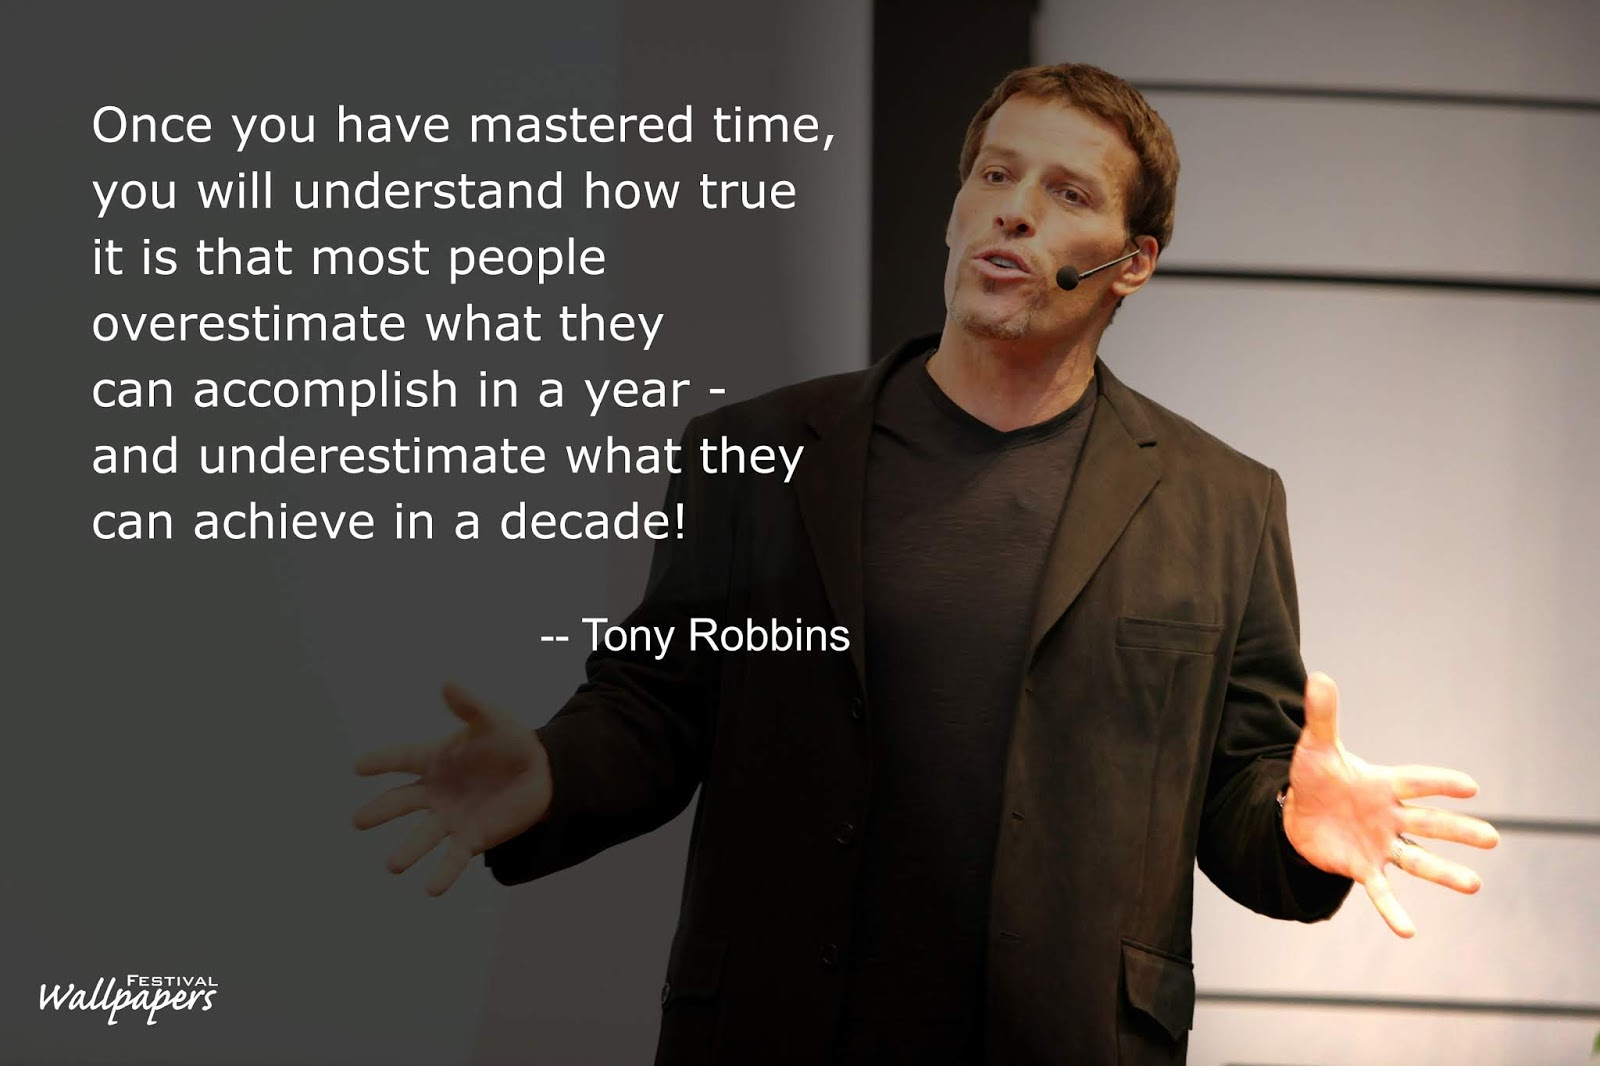 21 Most Inspiration Anthony Robbins Quotes to Inspire You